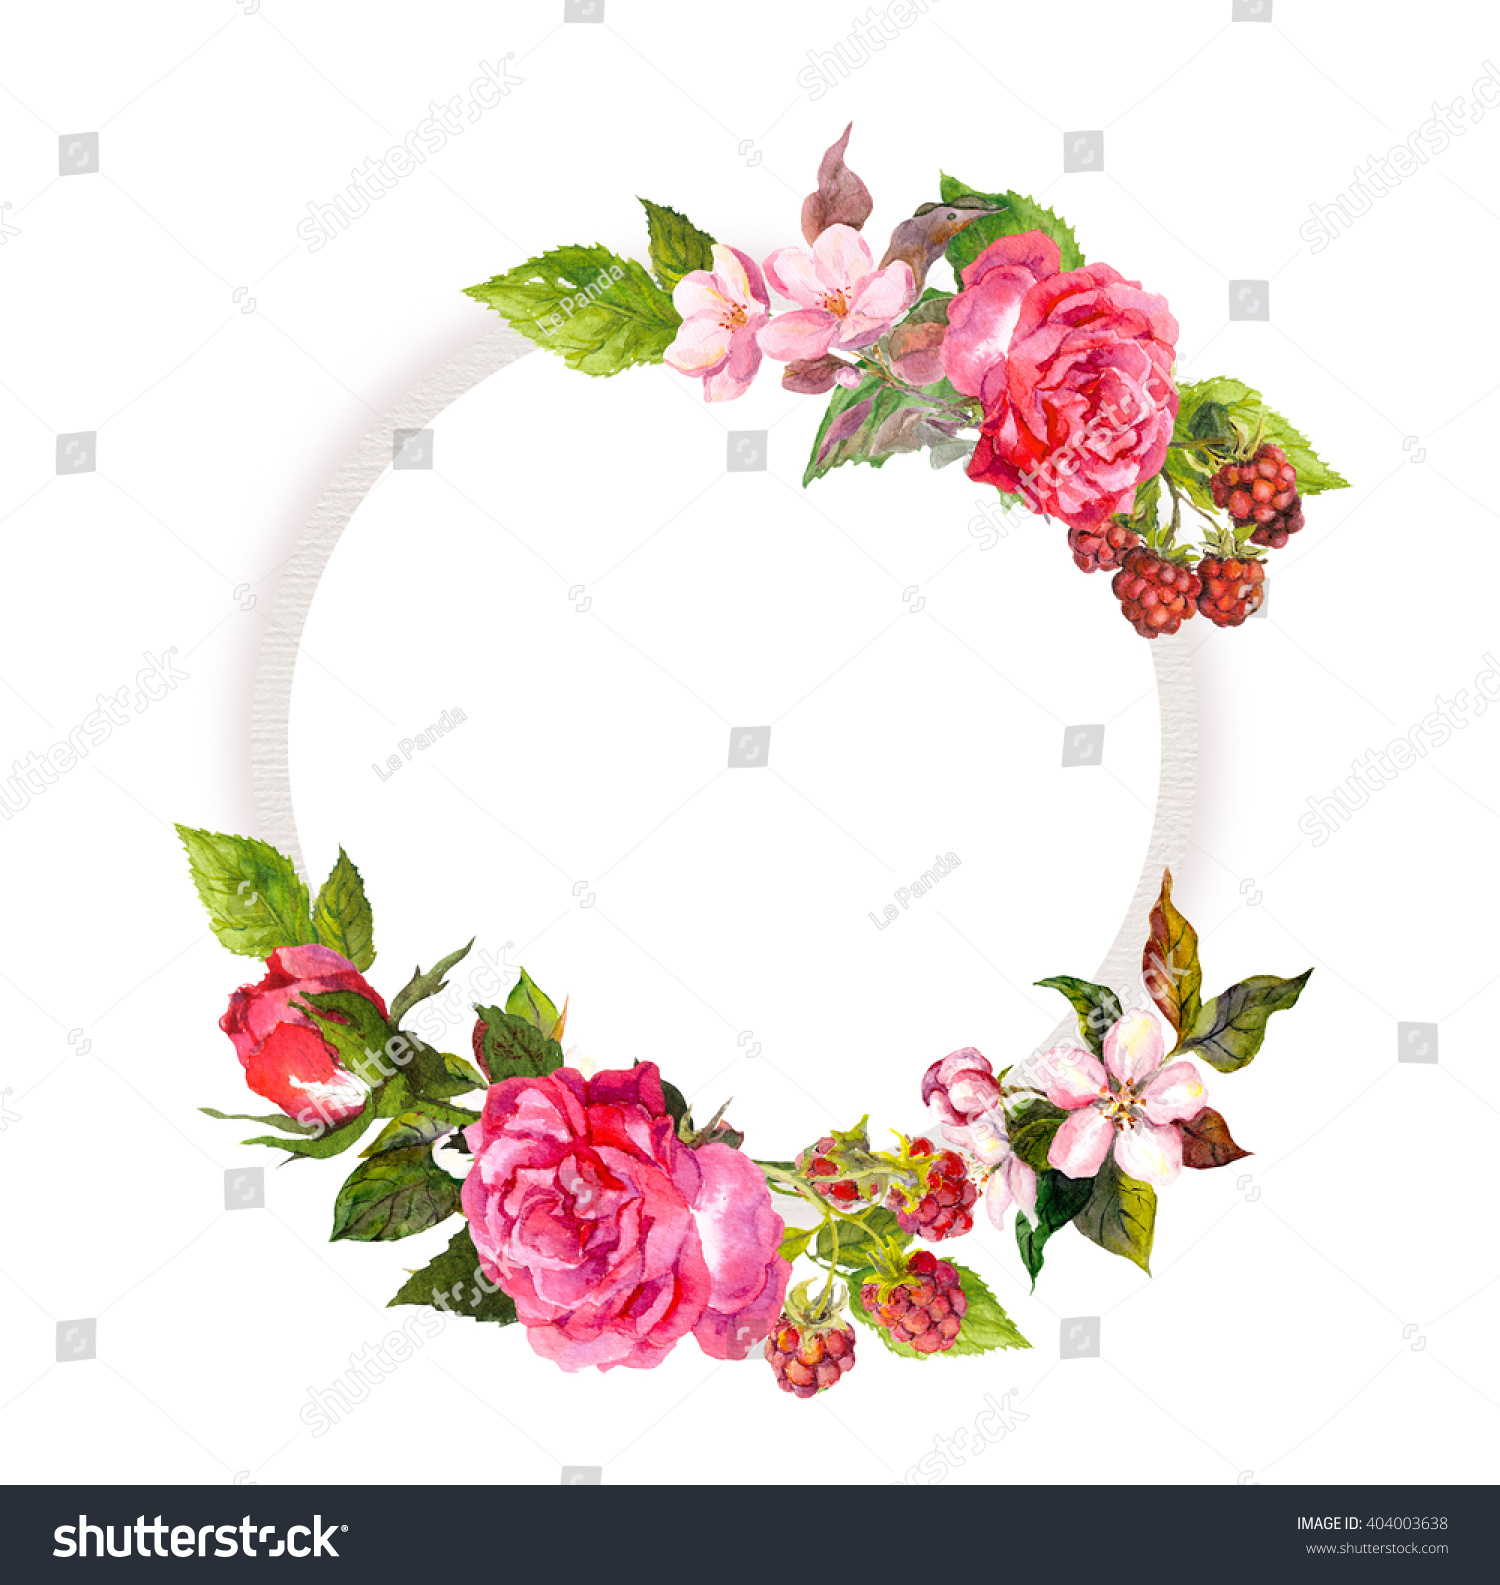 Floral Wreath Roses Pink Flowers Berries Stock Illustration